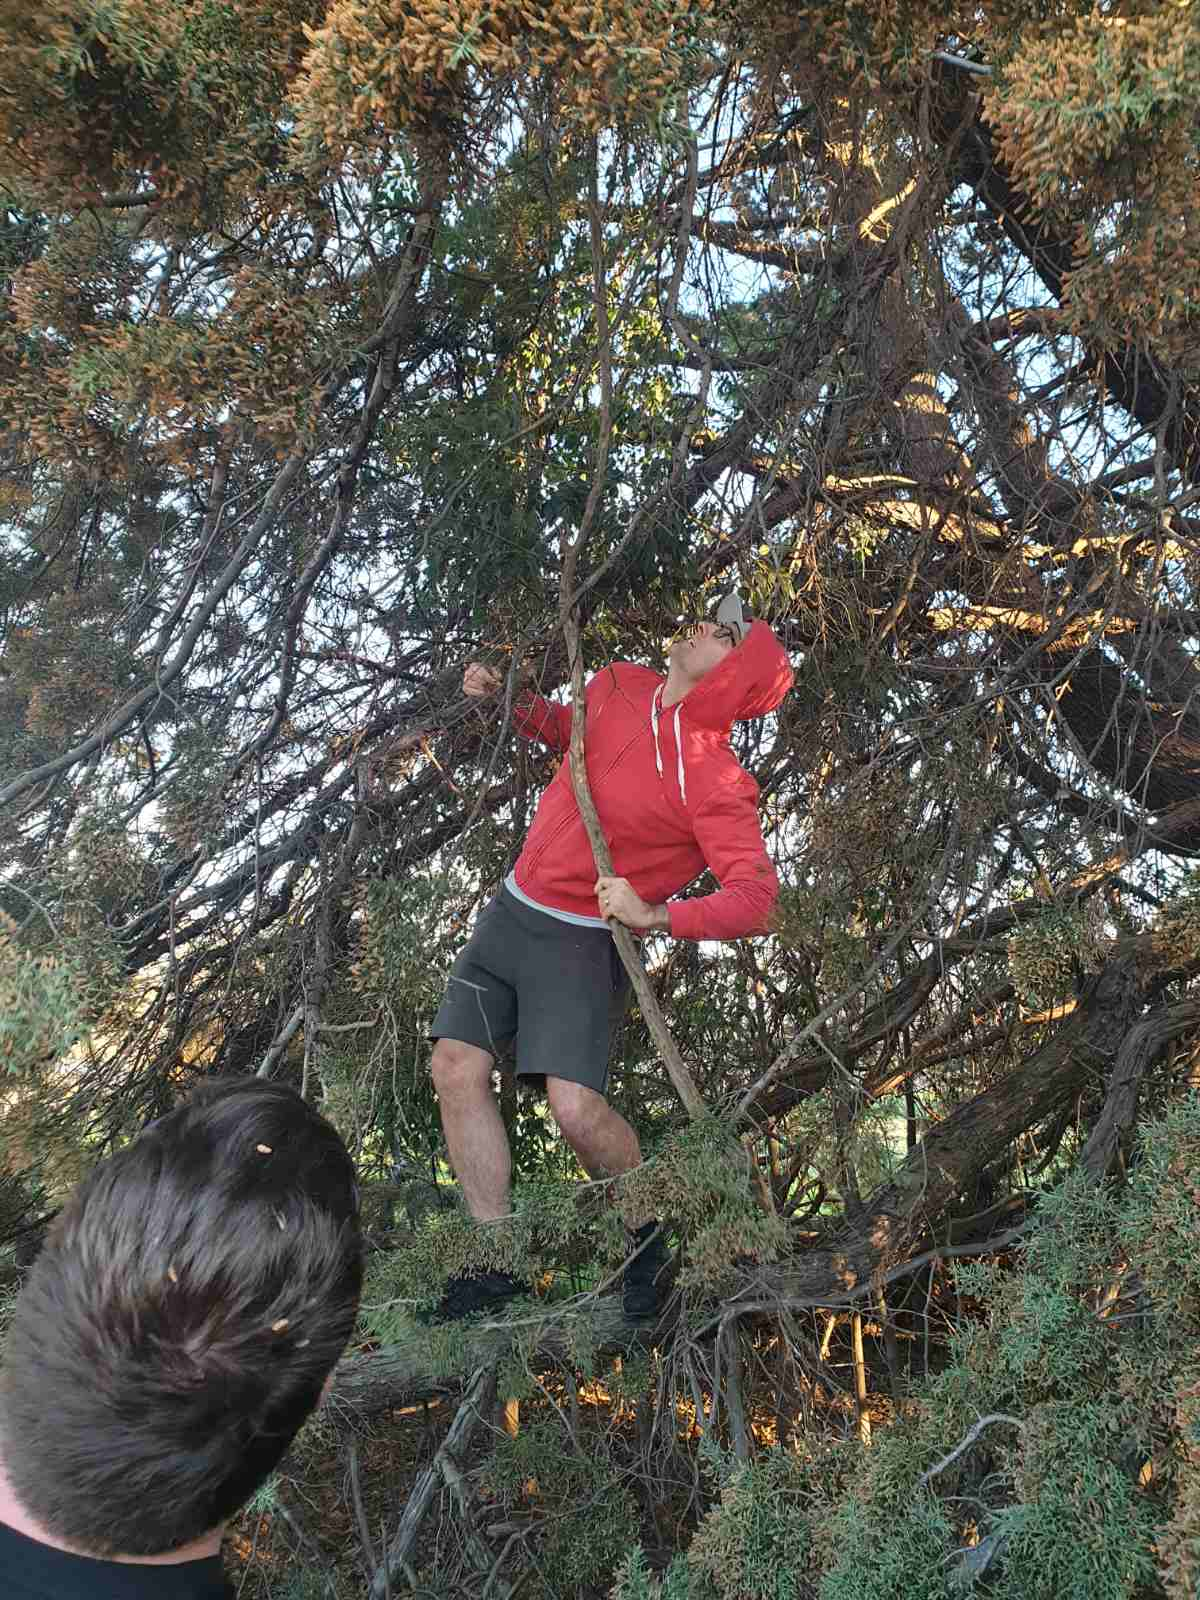 Me getting disc out of tree